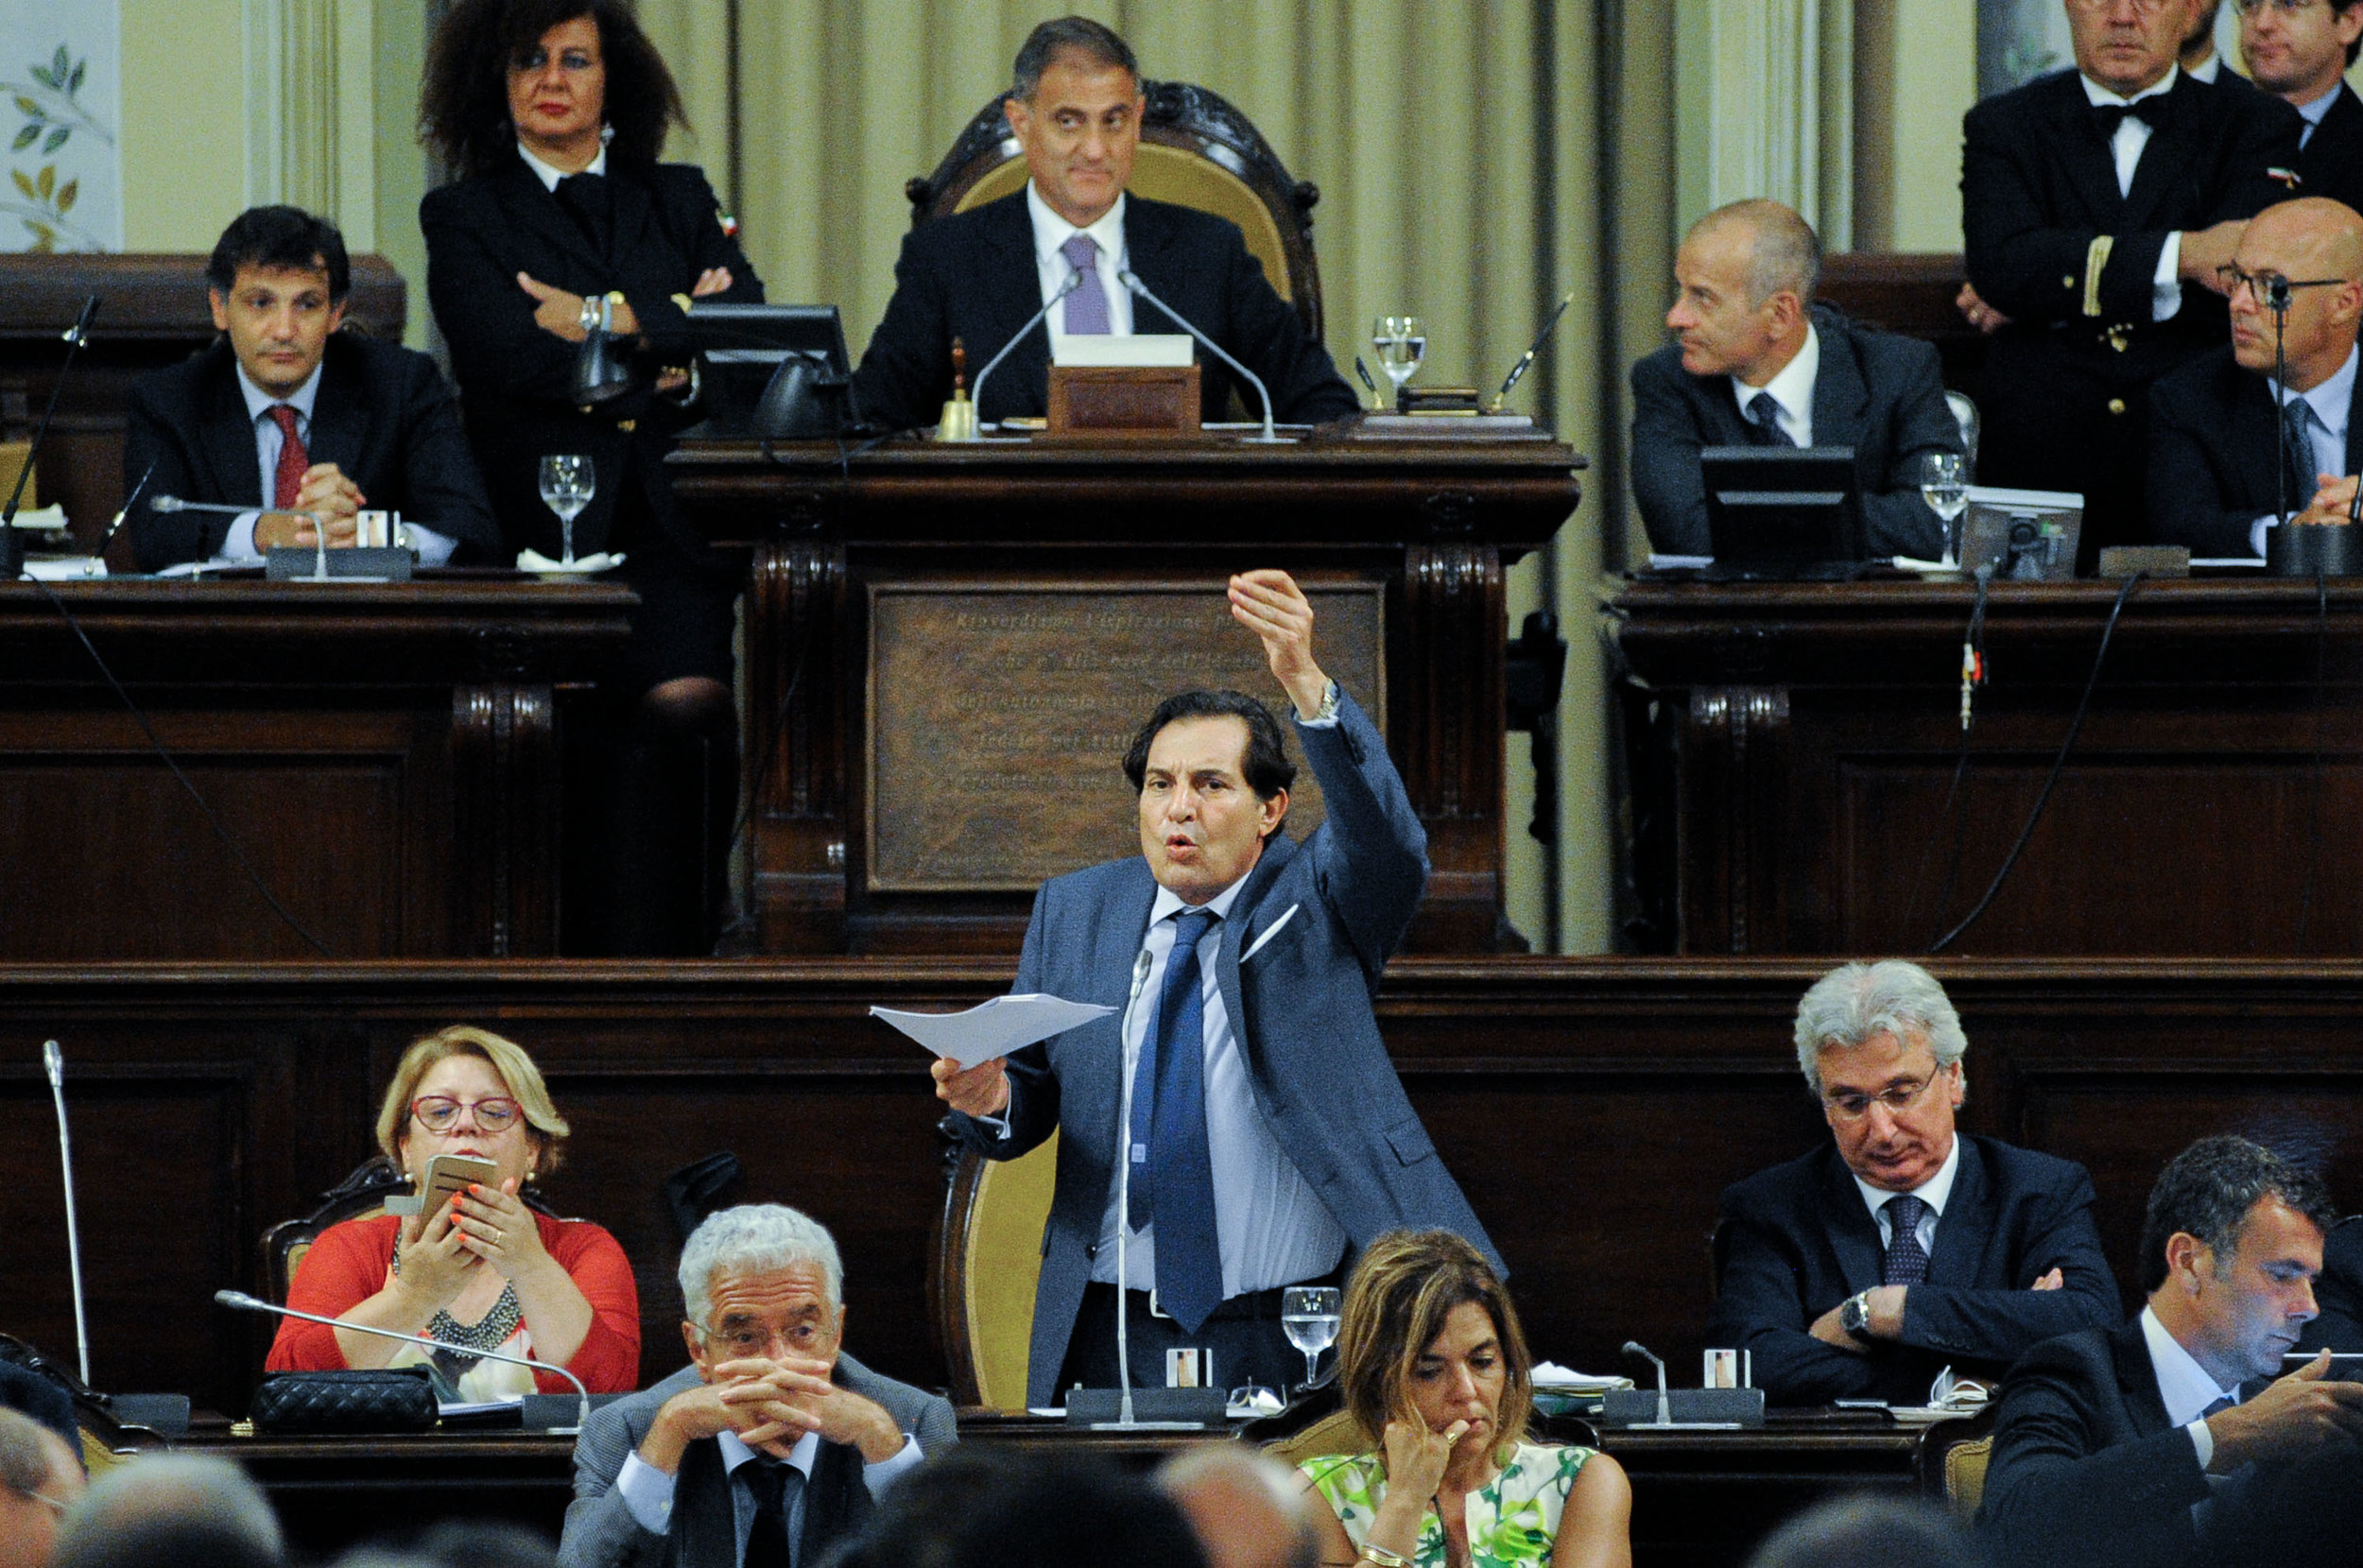 Governor of Sicily Rosario Crocetta speaks in the Sicilian Parliament for the first time after the scandal generated by a story published by the magazine L'Espresso in Palermo, Italy, July 23, 2015.